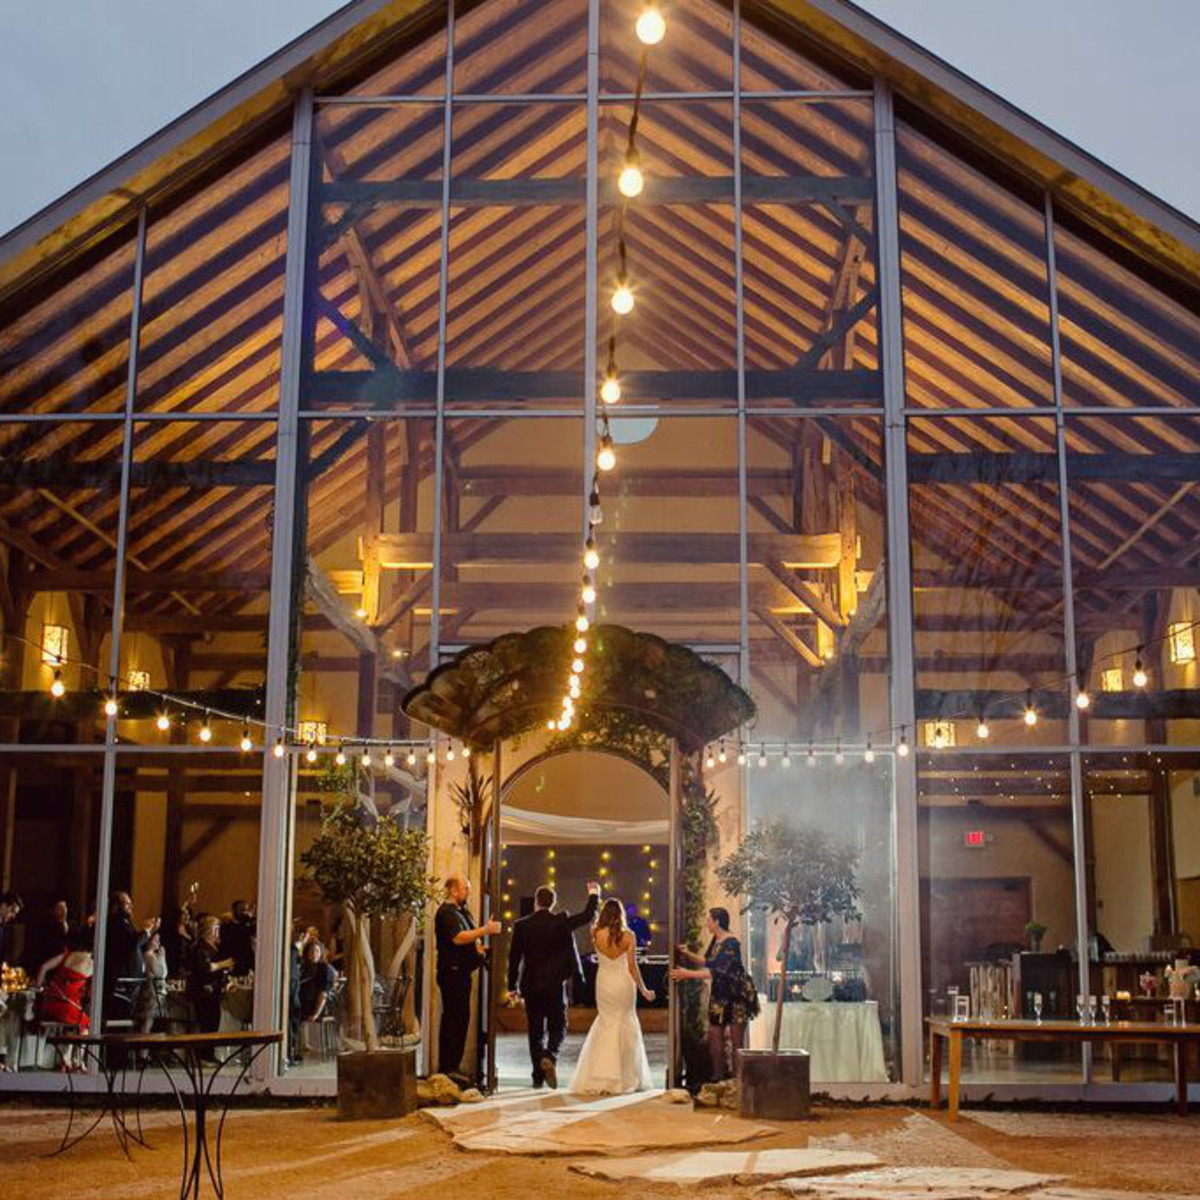 Wedding Places Austin Tx: 6 Picture-perfect Austin Wedding Venues For Your Special